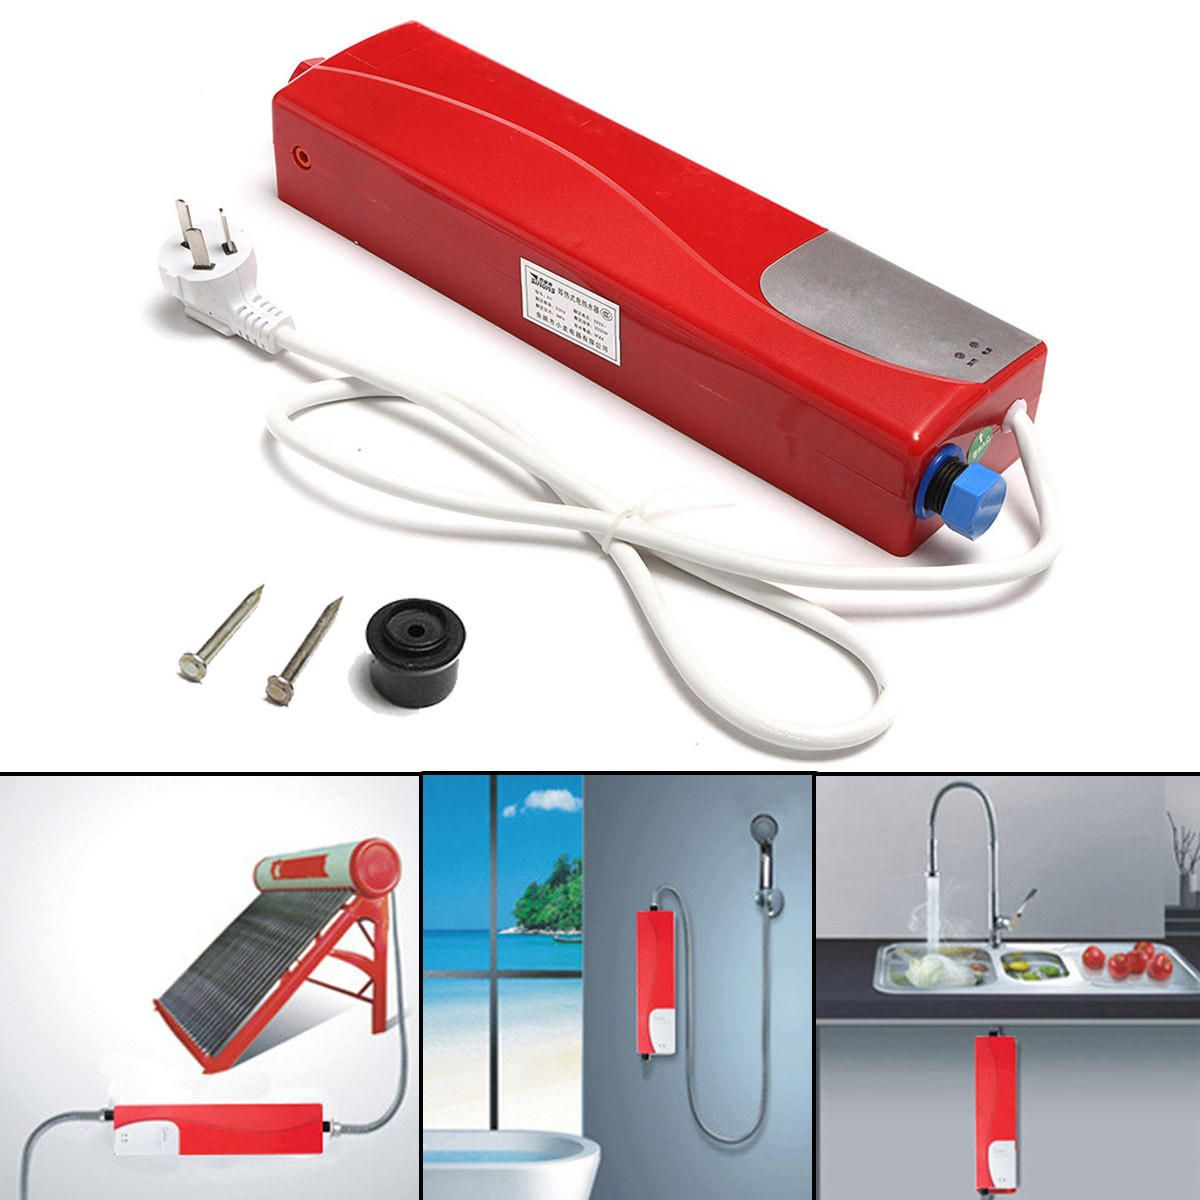 220V 3000W Tankless Water Heater Electric Shower Instant